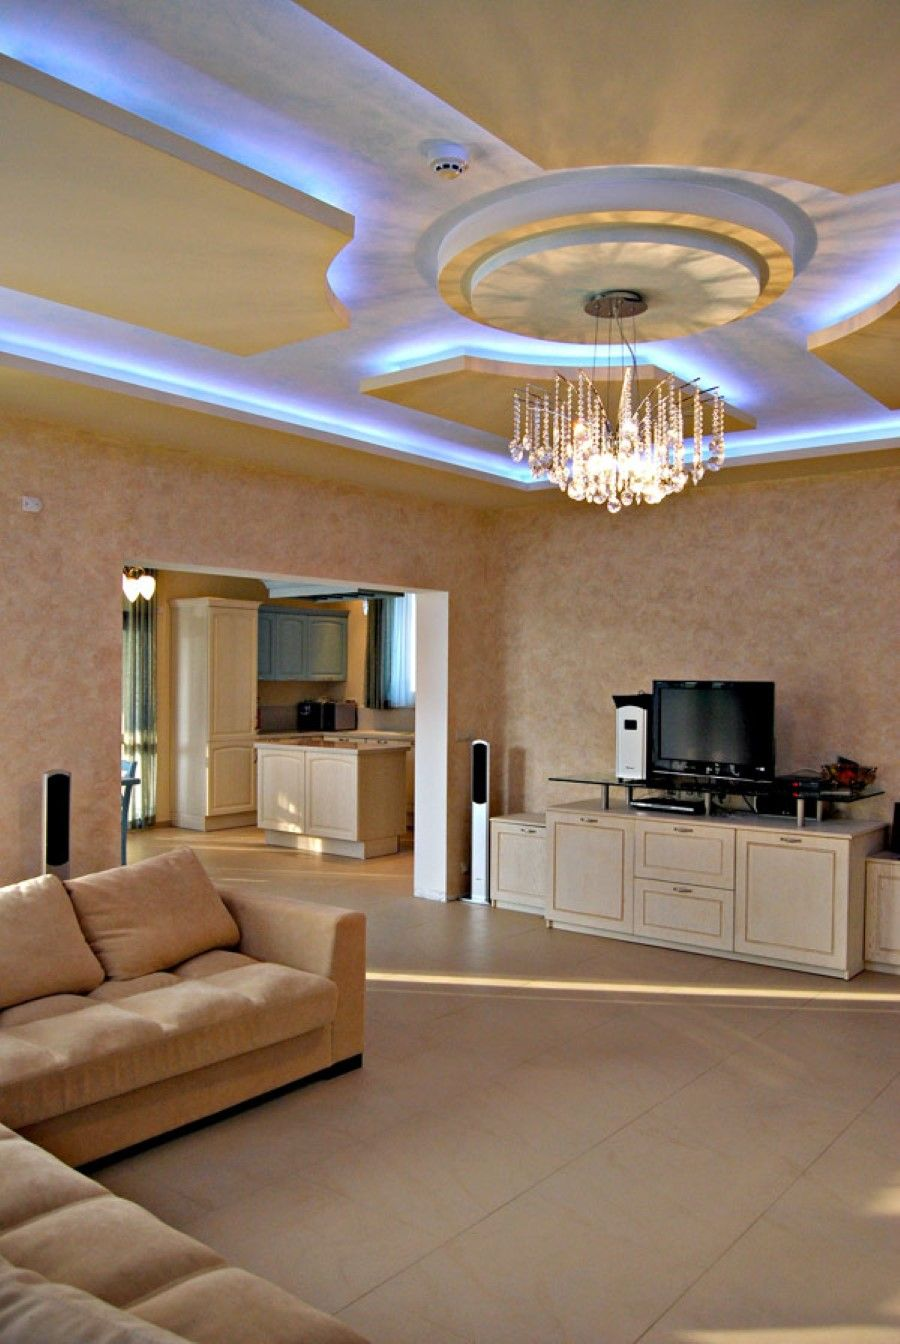 Kids Room False Ceiling Design: Fantastic Living Room Idea With Blue Hidden Ceiling Lights